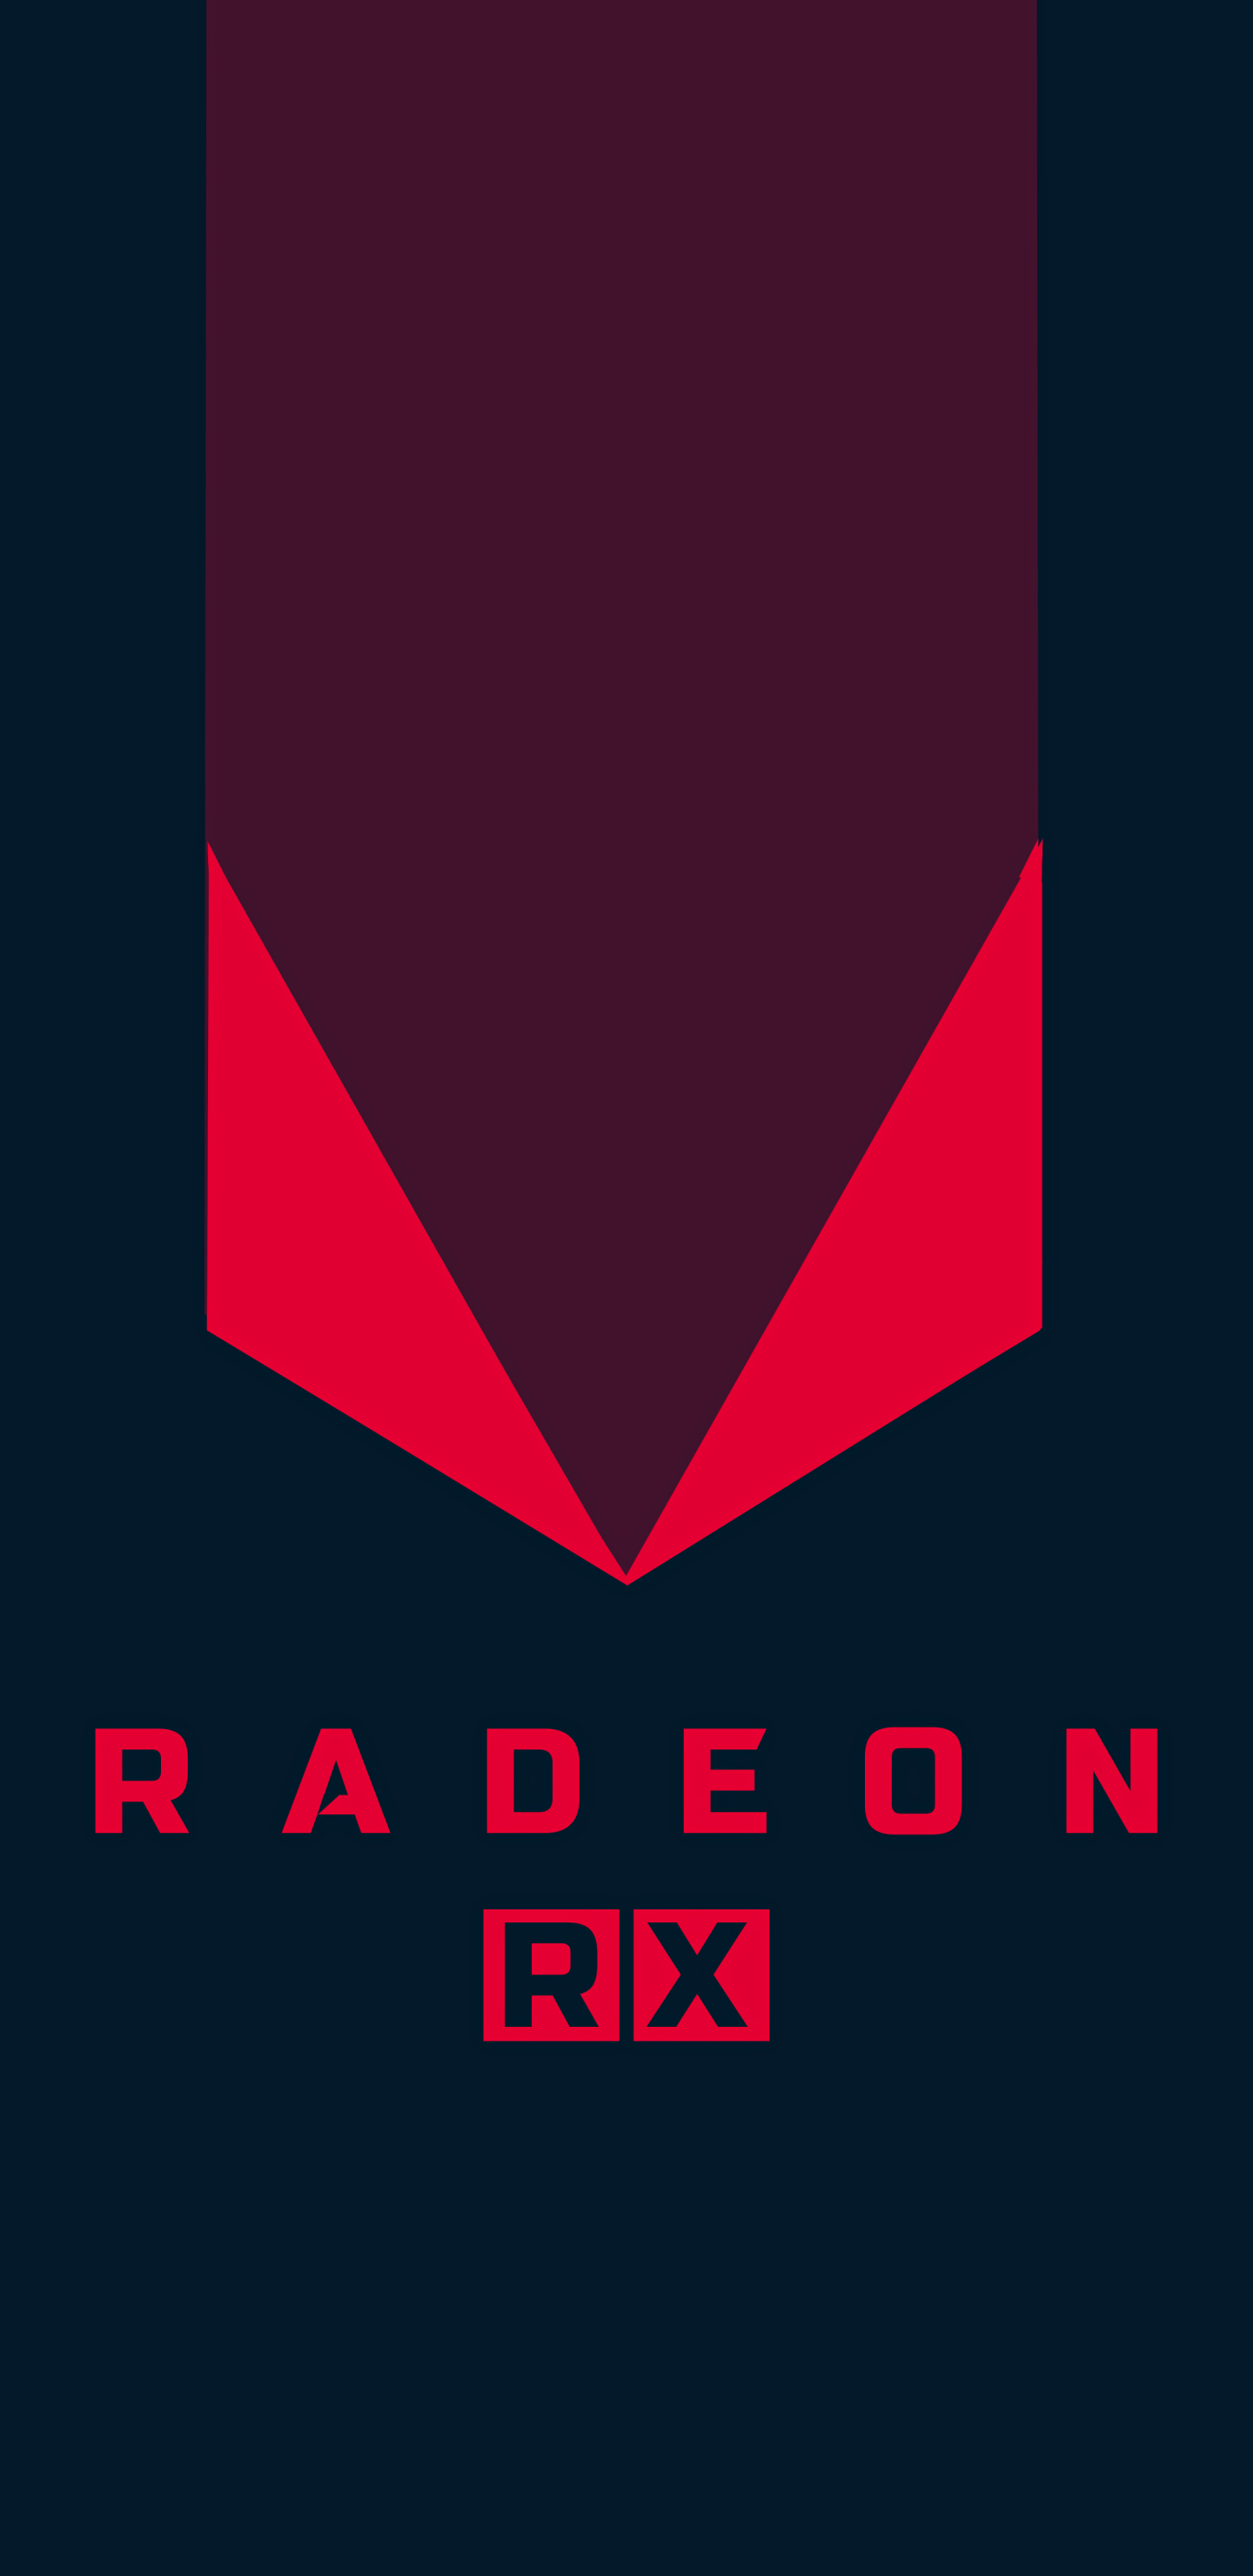 AMD (1440x2960) Wallpaper ID: 817791